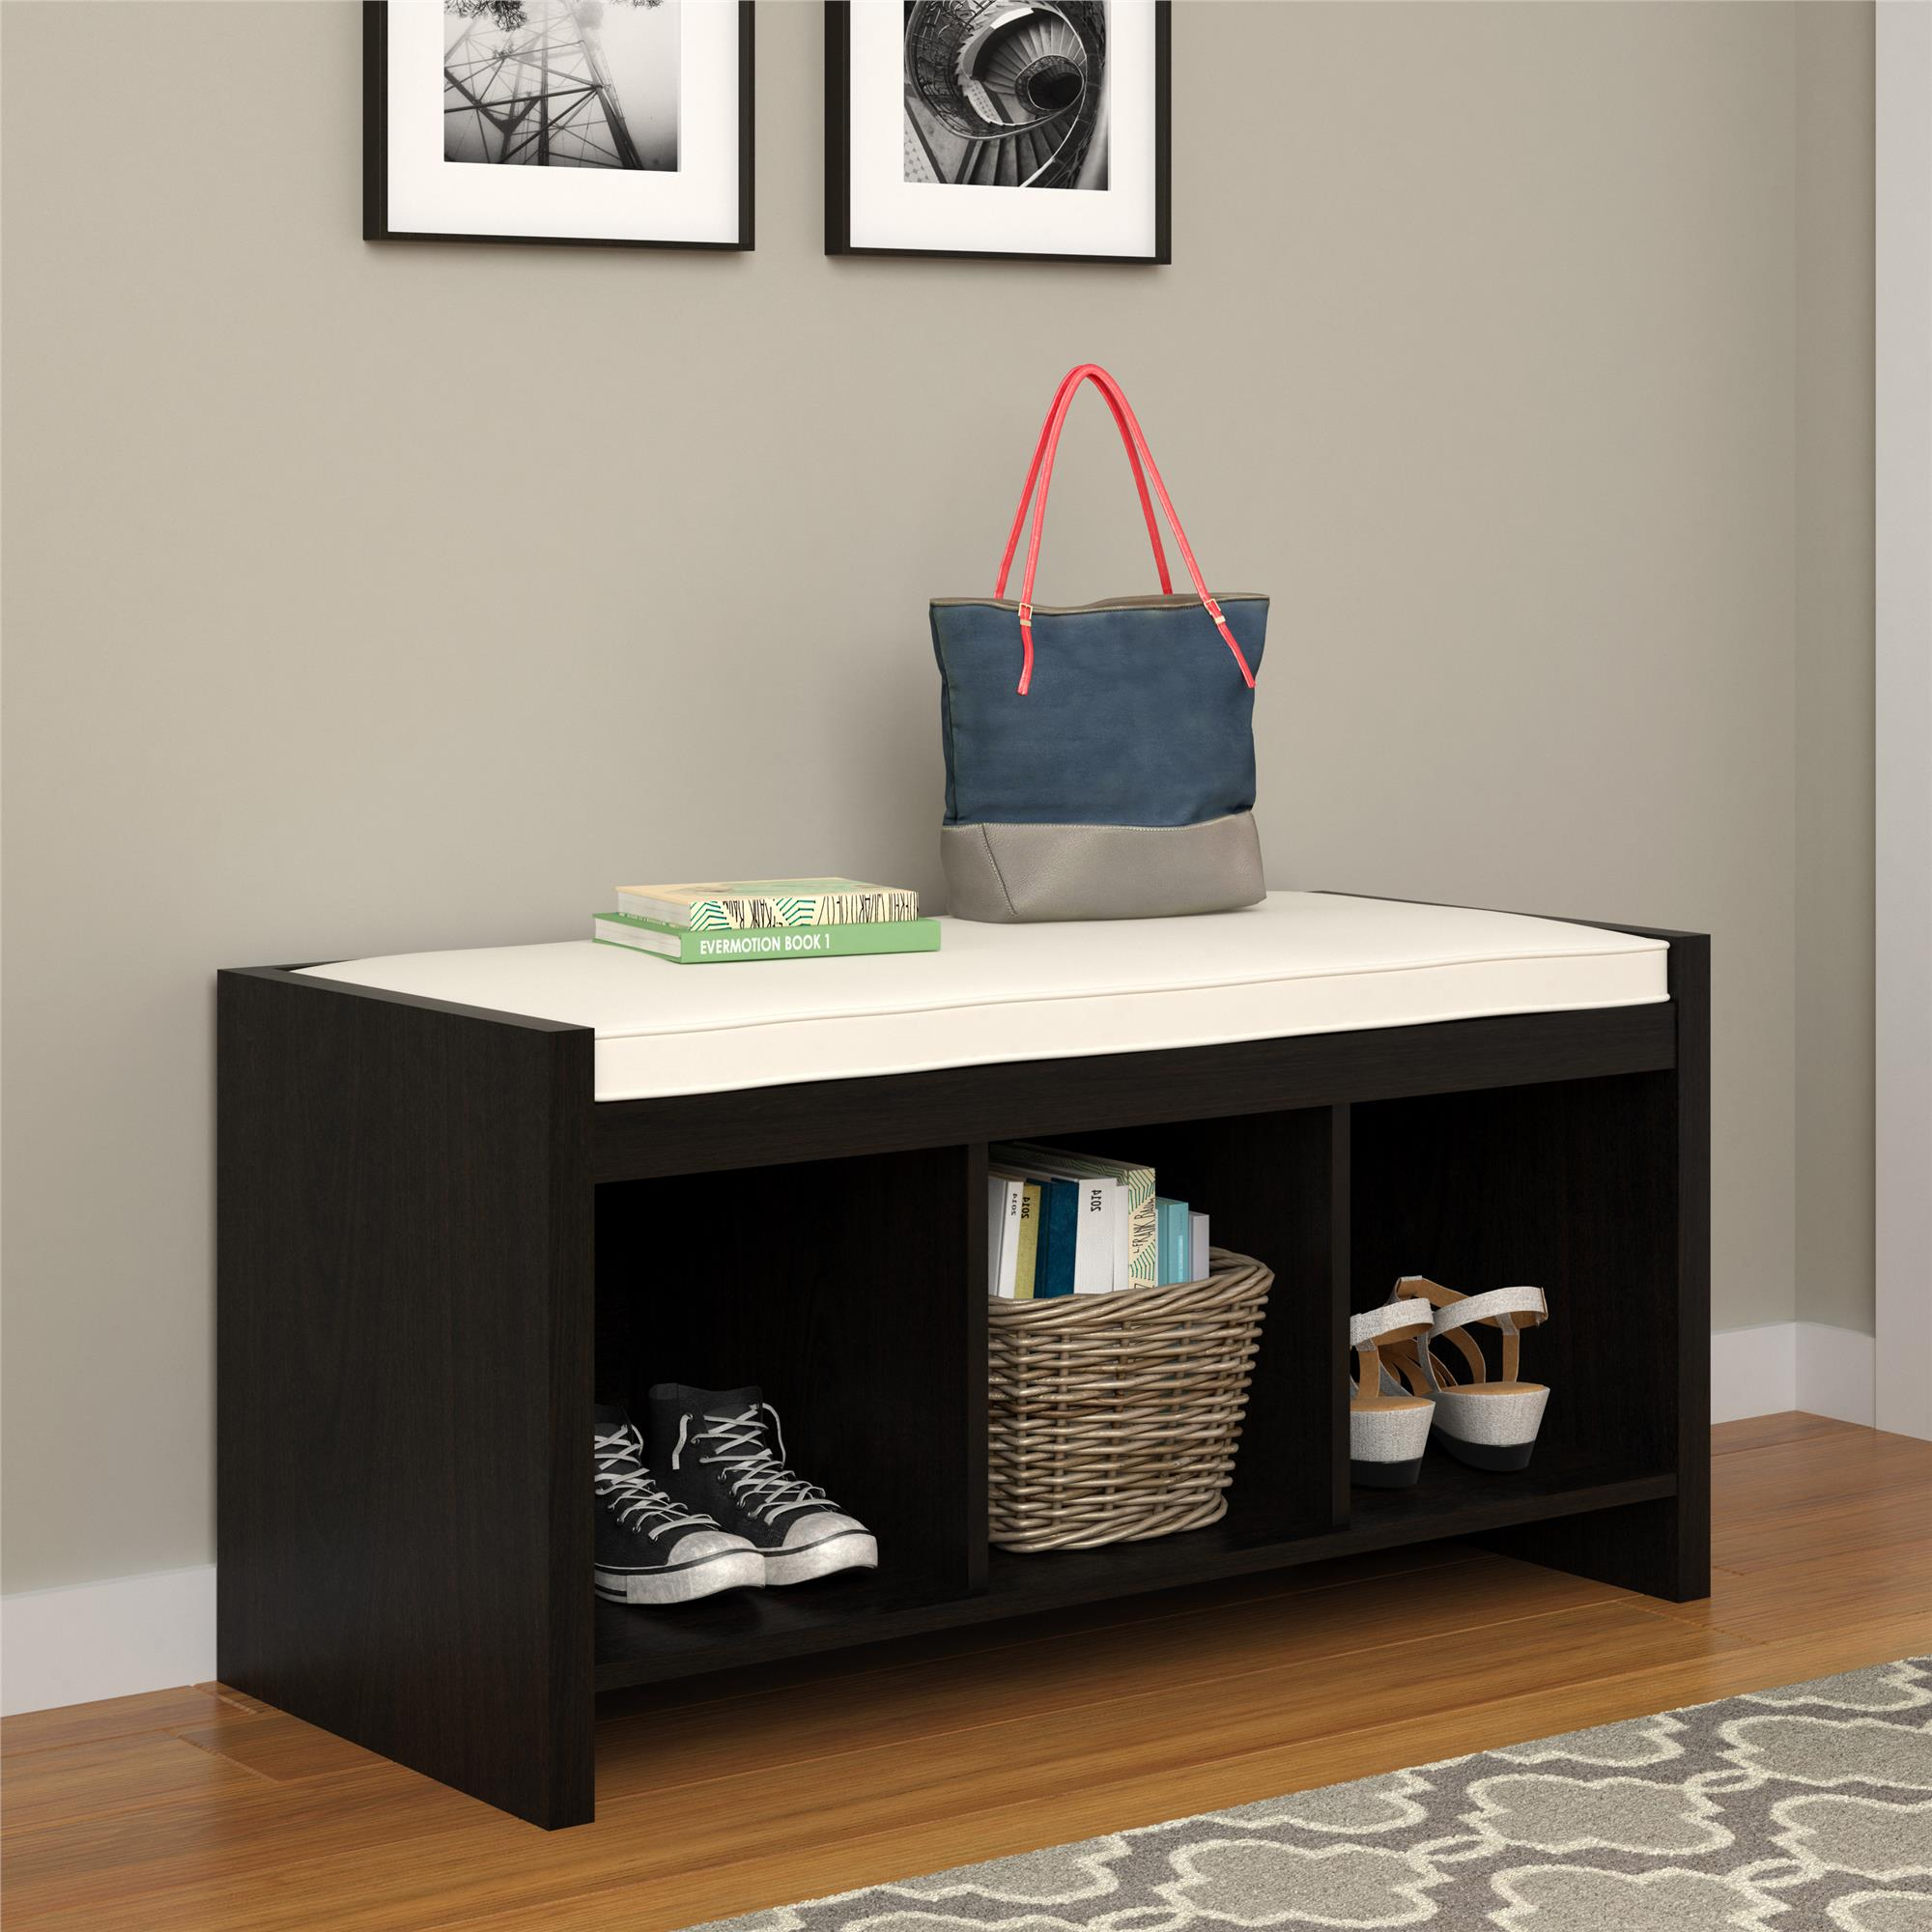 Ameriwood Home Penelope Entryway Storage Bench with Cushion, Espresso by Ameriwood Home